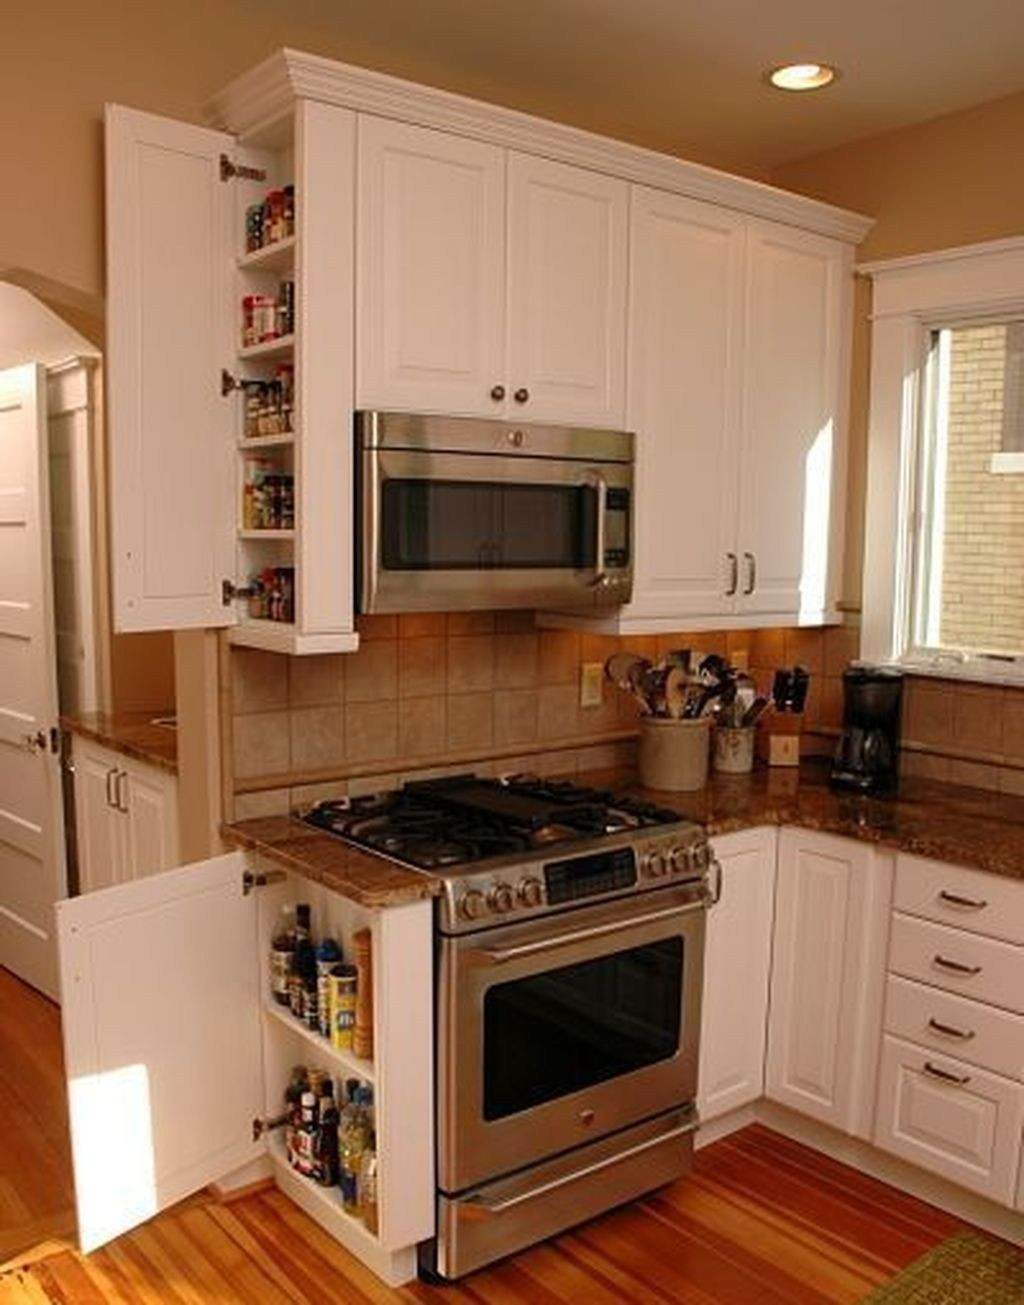 Classy Tiny Kitchen 49 Elegant Small Kitchen Ideas Remodel